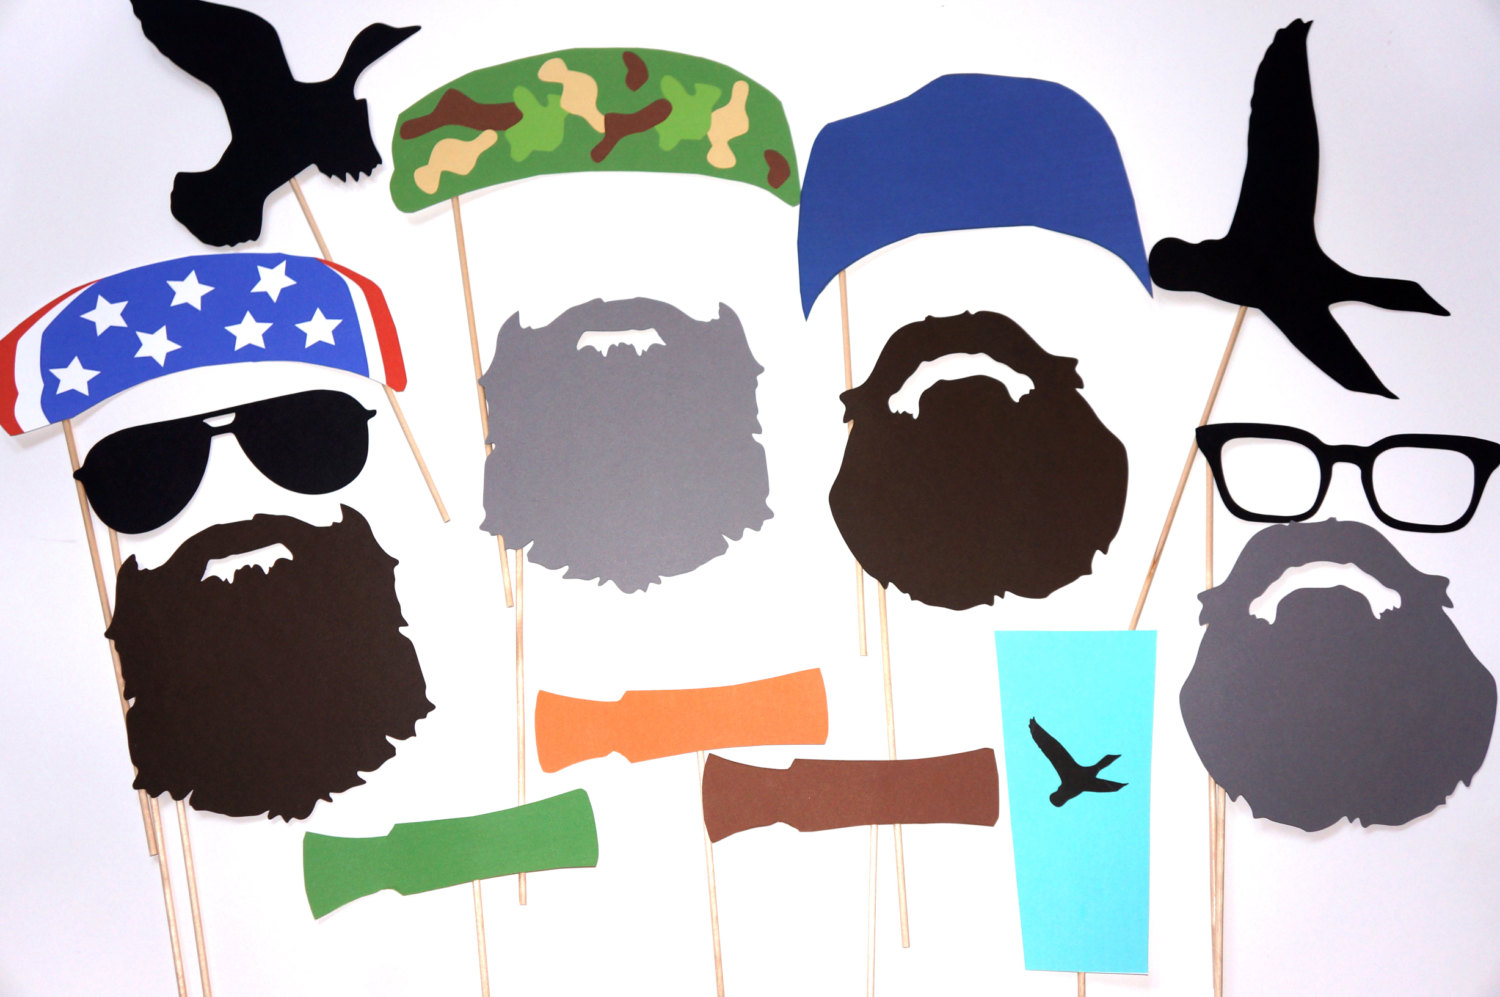 Download Duck Dynasty Beard Png.